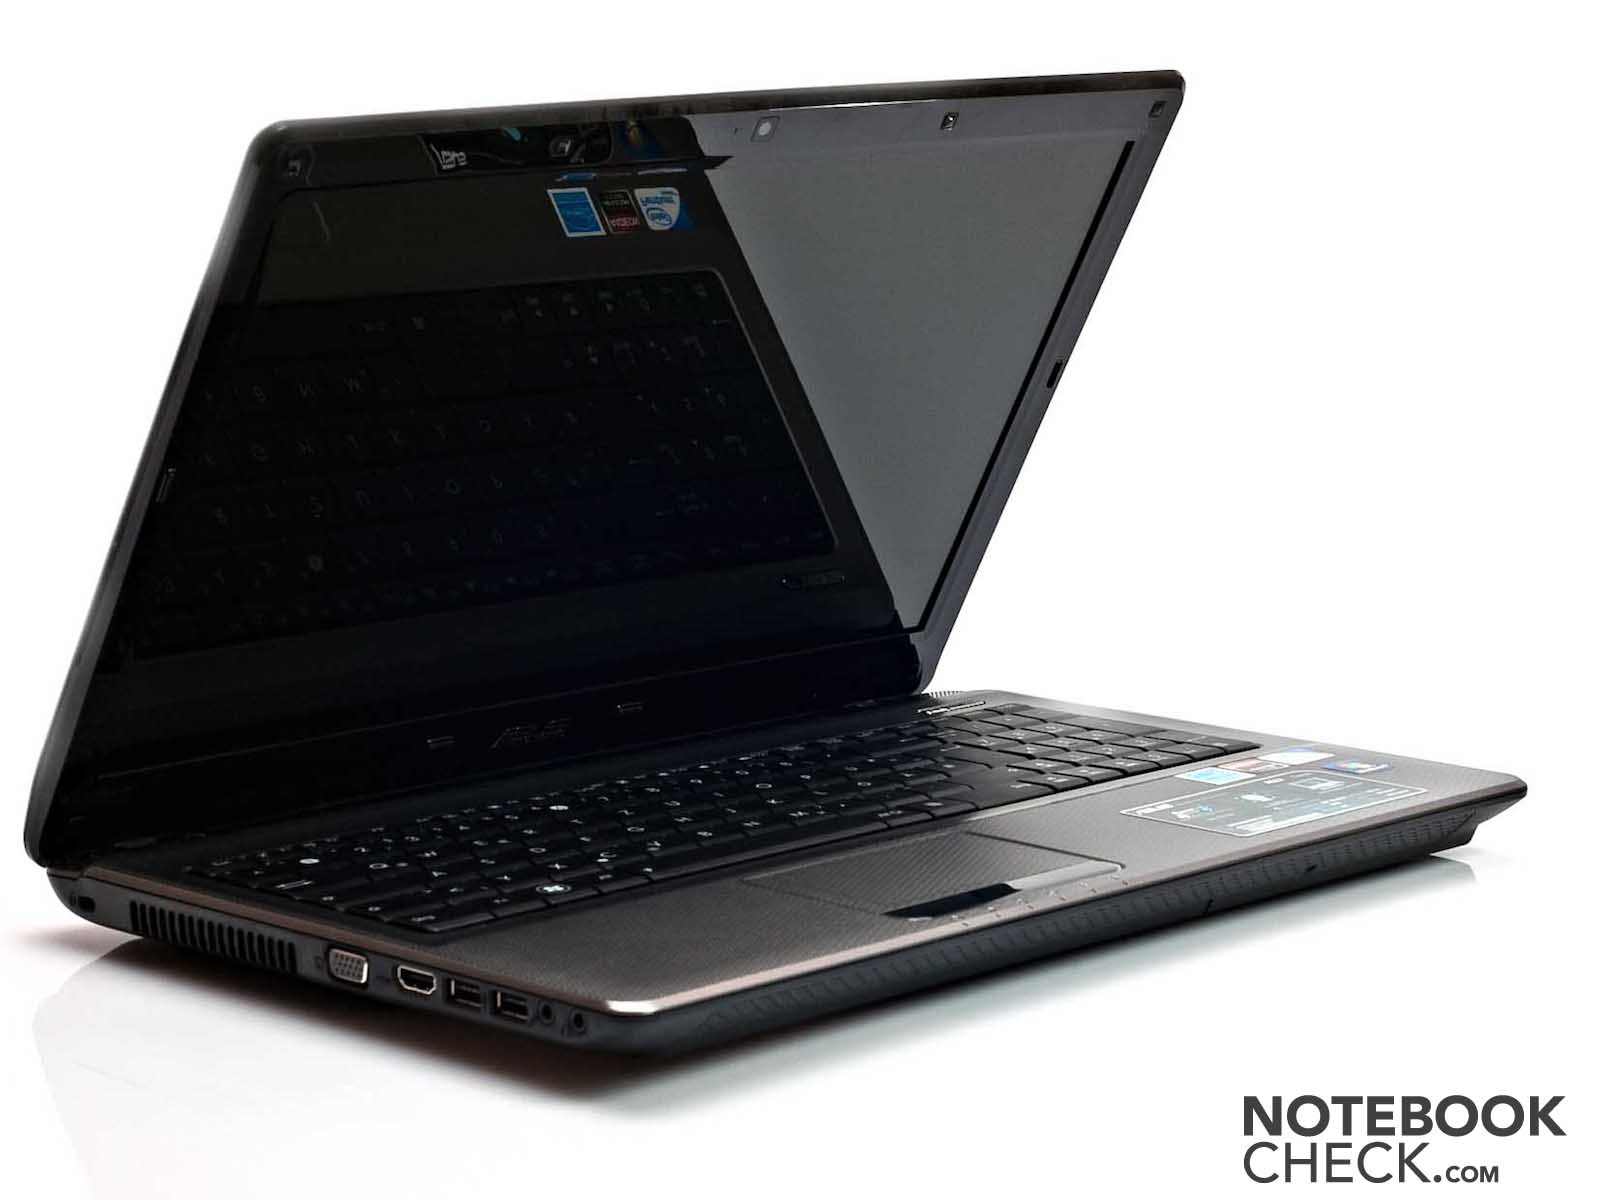 Asus A52JU Notebook Intel Chipset Drivers for Mac